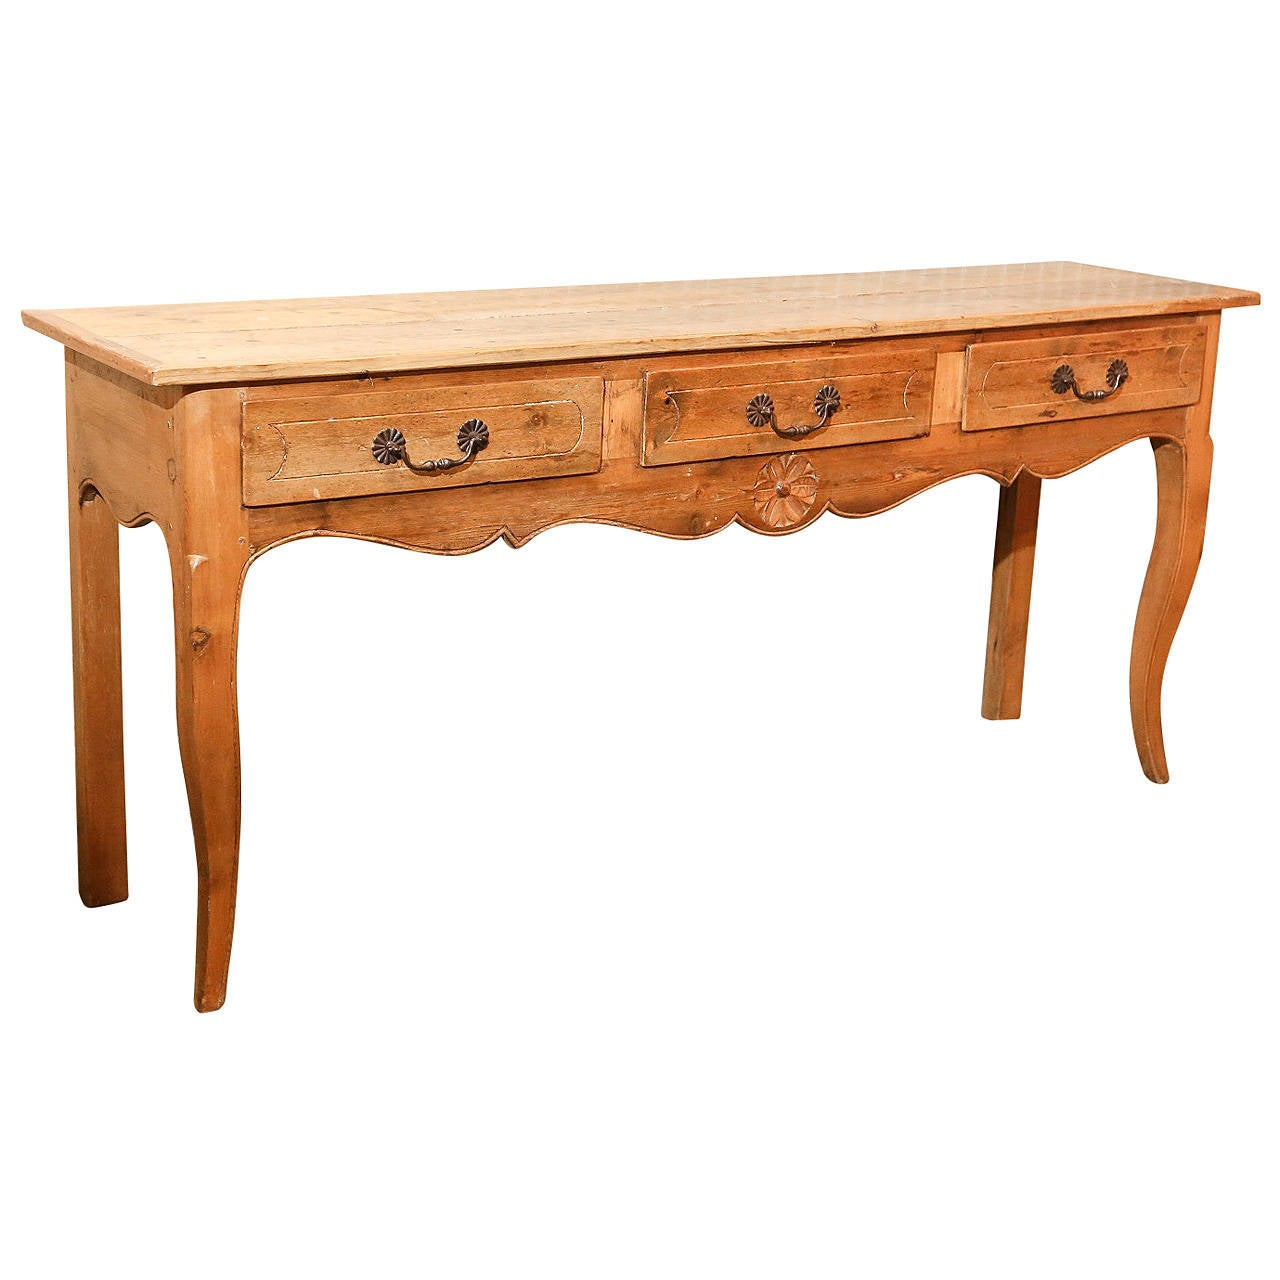 French country pine console table with three drawers for sale at 1stdibs - Pine sofa table with drawers ...